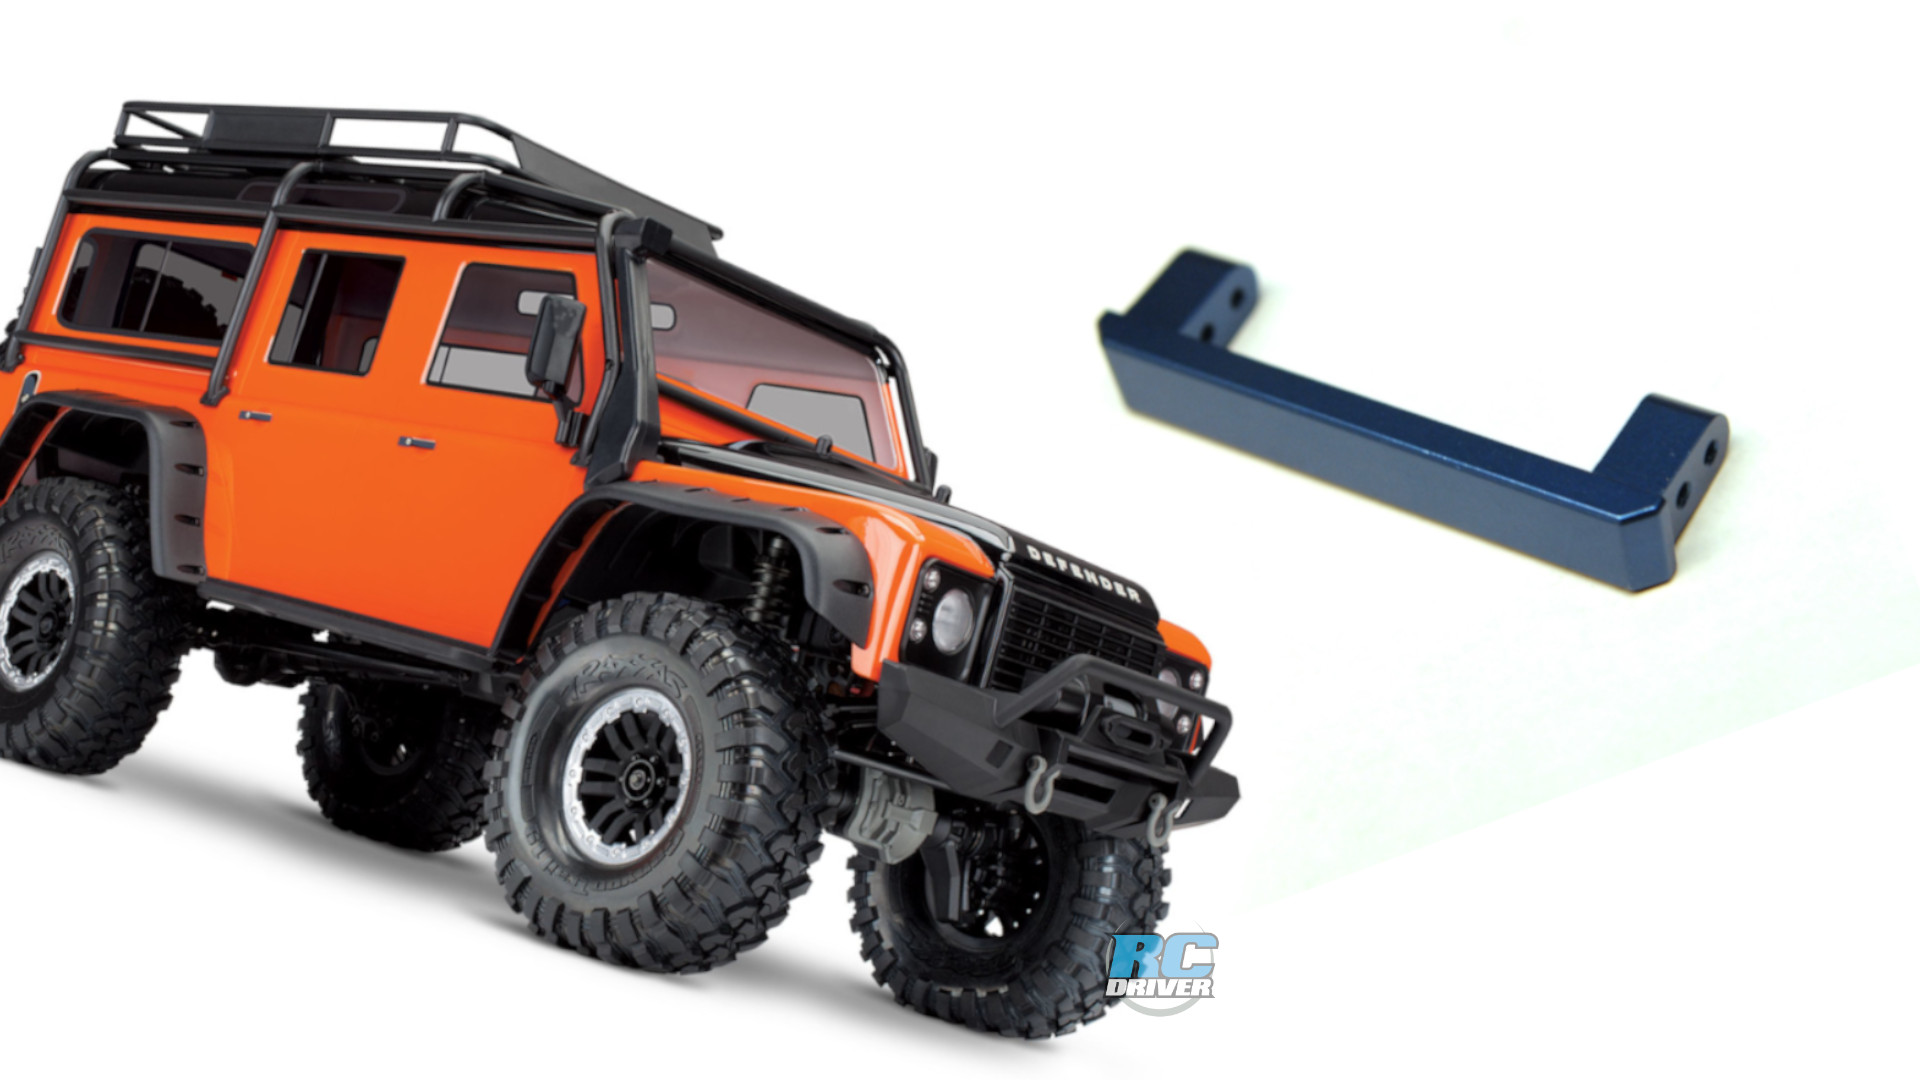 STRC rear bumper mount eliminator braces for Traxxas TRX-4